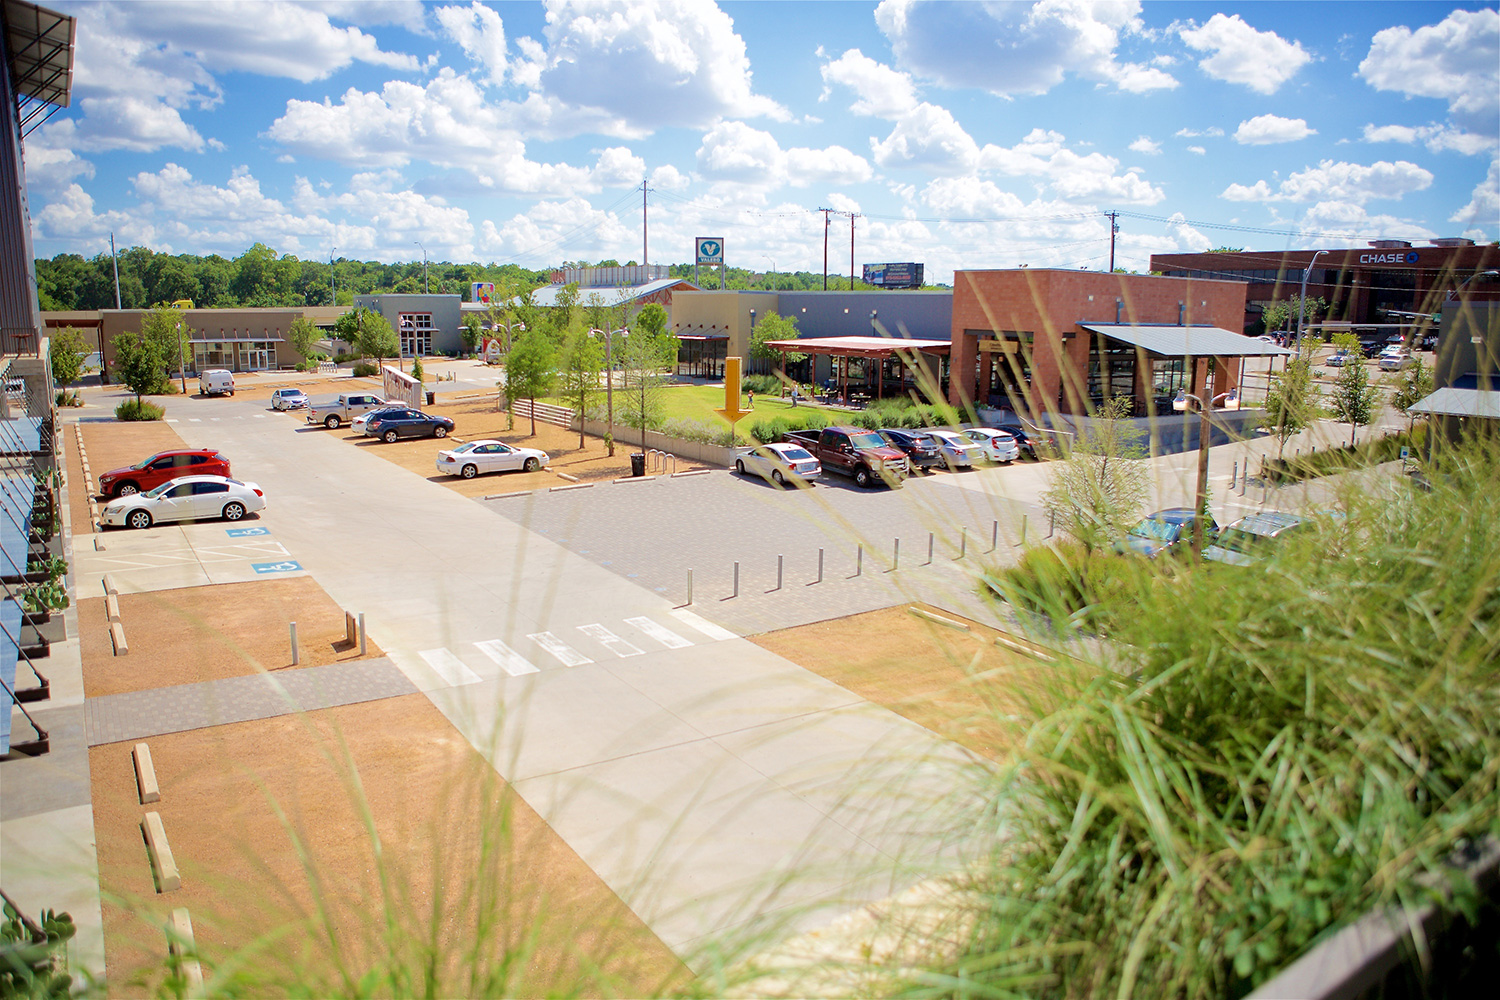 Sylvan Thirty - Honor AwardWith a natural topography evoking native Blackland Prairie of North Texas, Sylvan Thirty's terraced and sloping site encourages pedestrian activity at the central green, the shaded pedestrian spine, and along the perimeter streets.